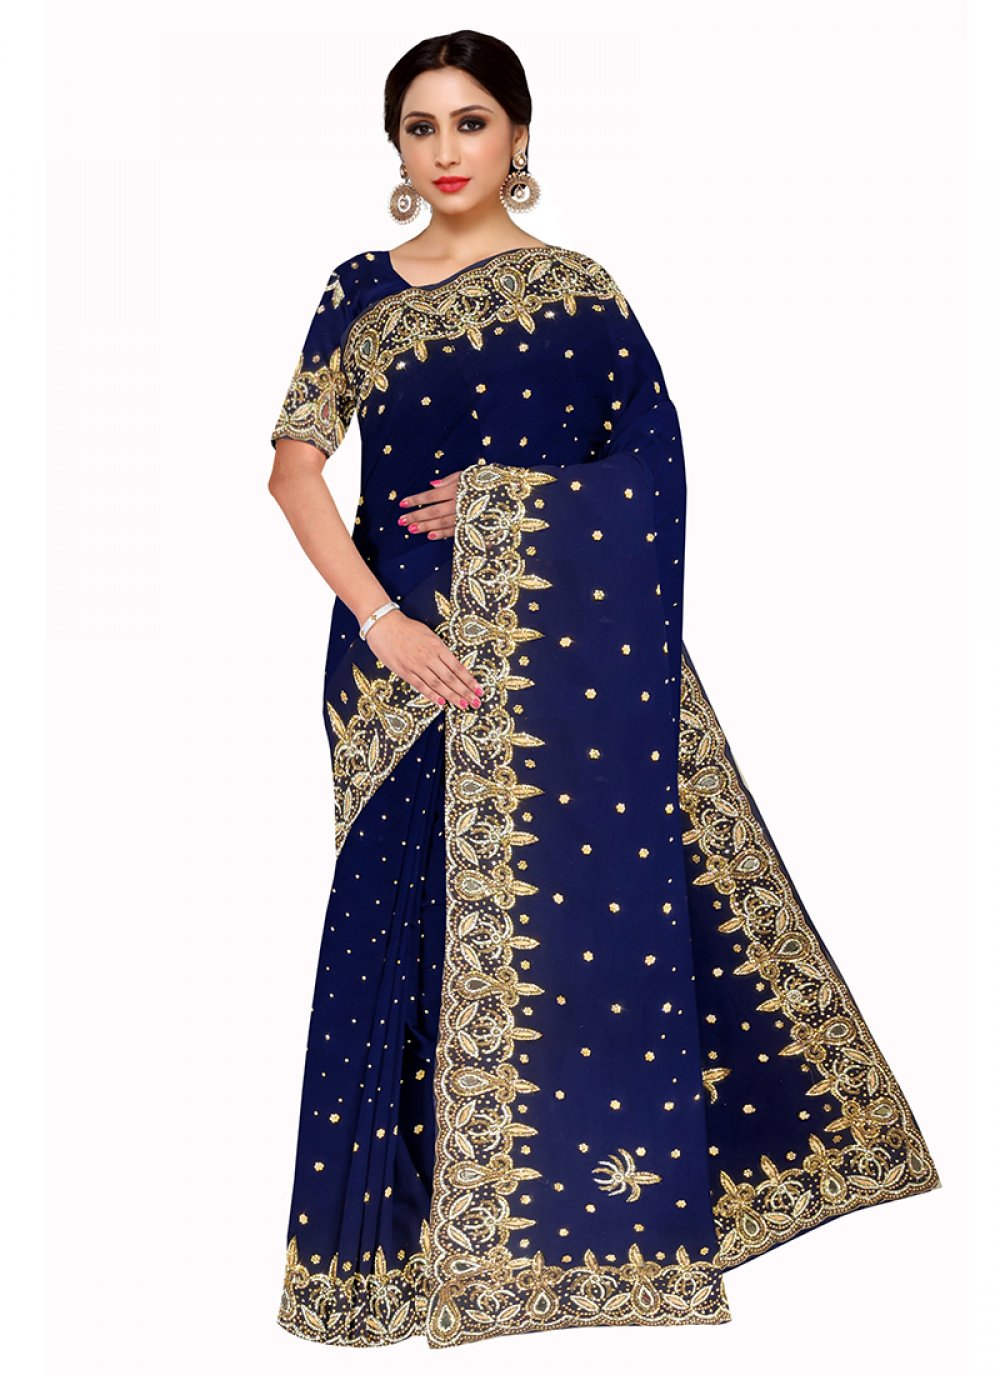 Georgette Embroidered Navy Blue Saree